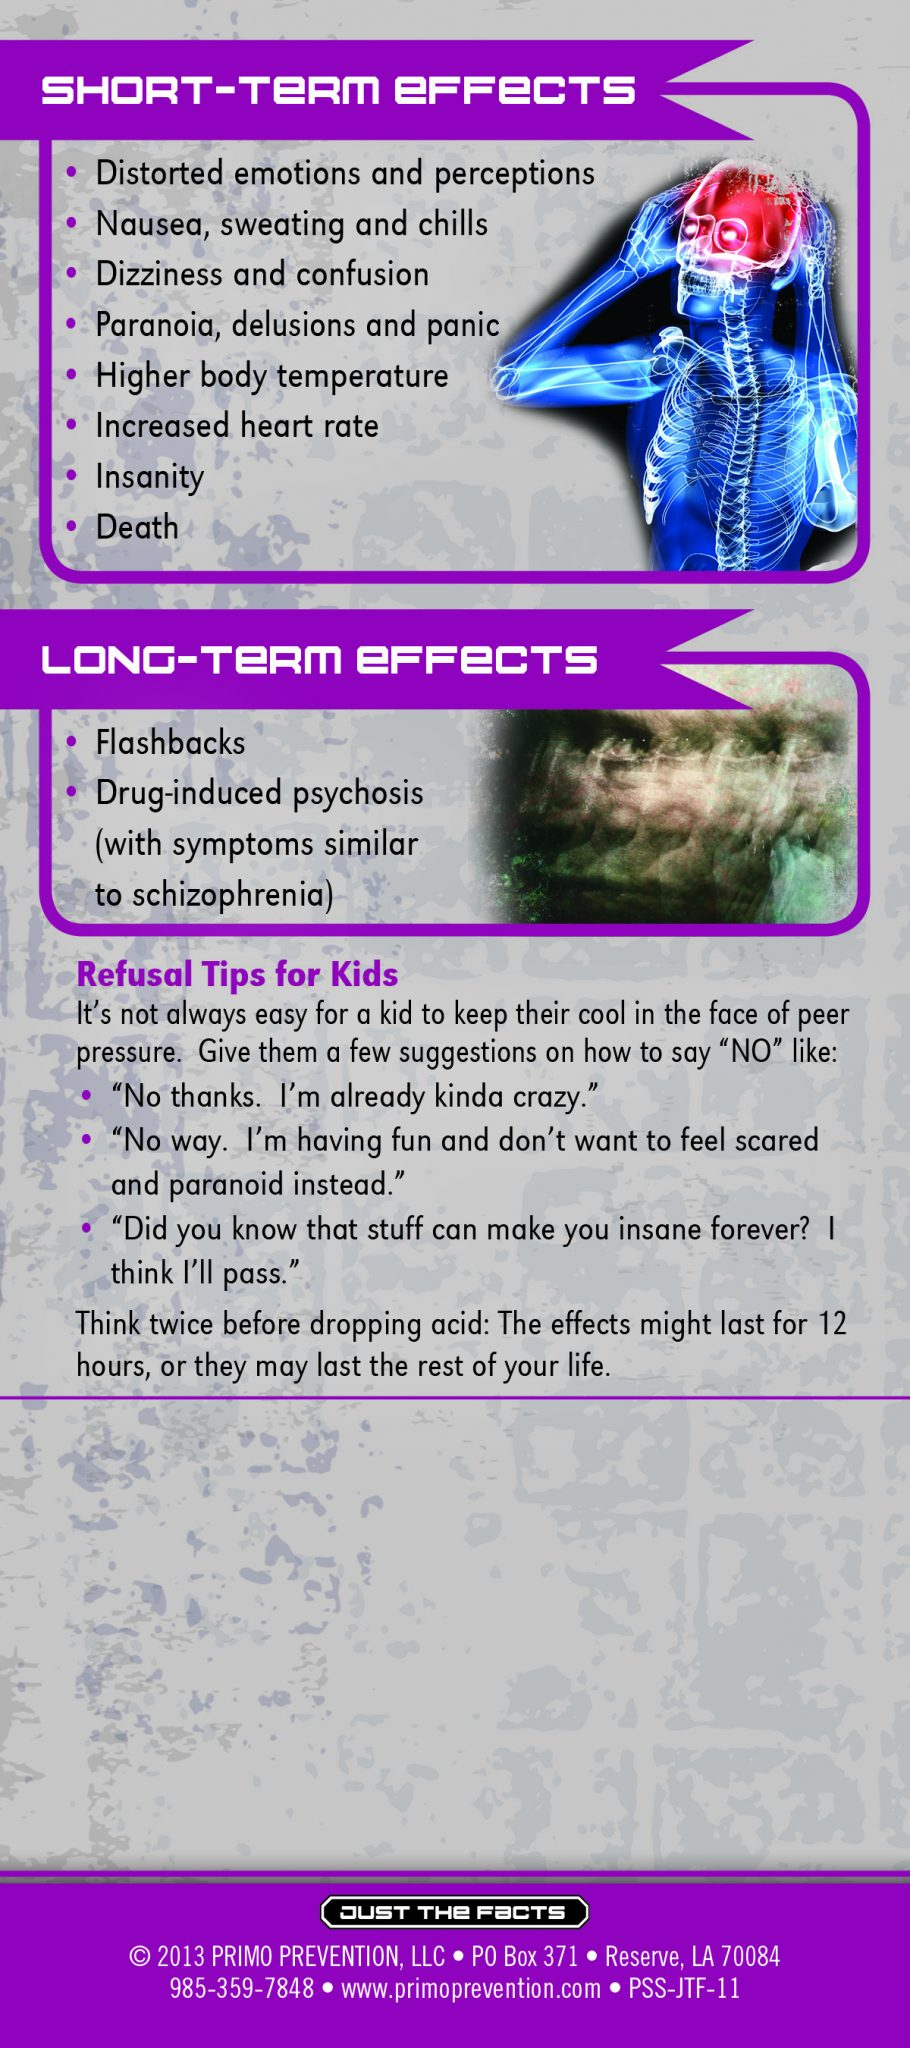 Just the Facts Rack Card: LSD